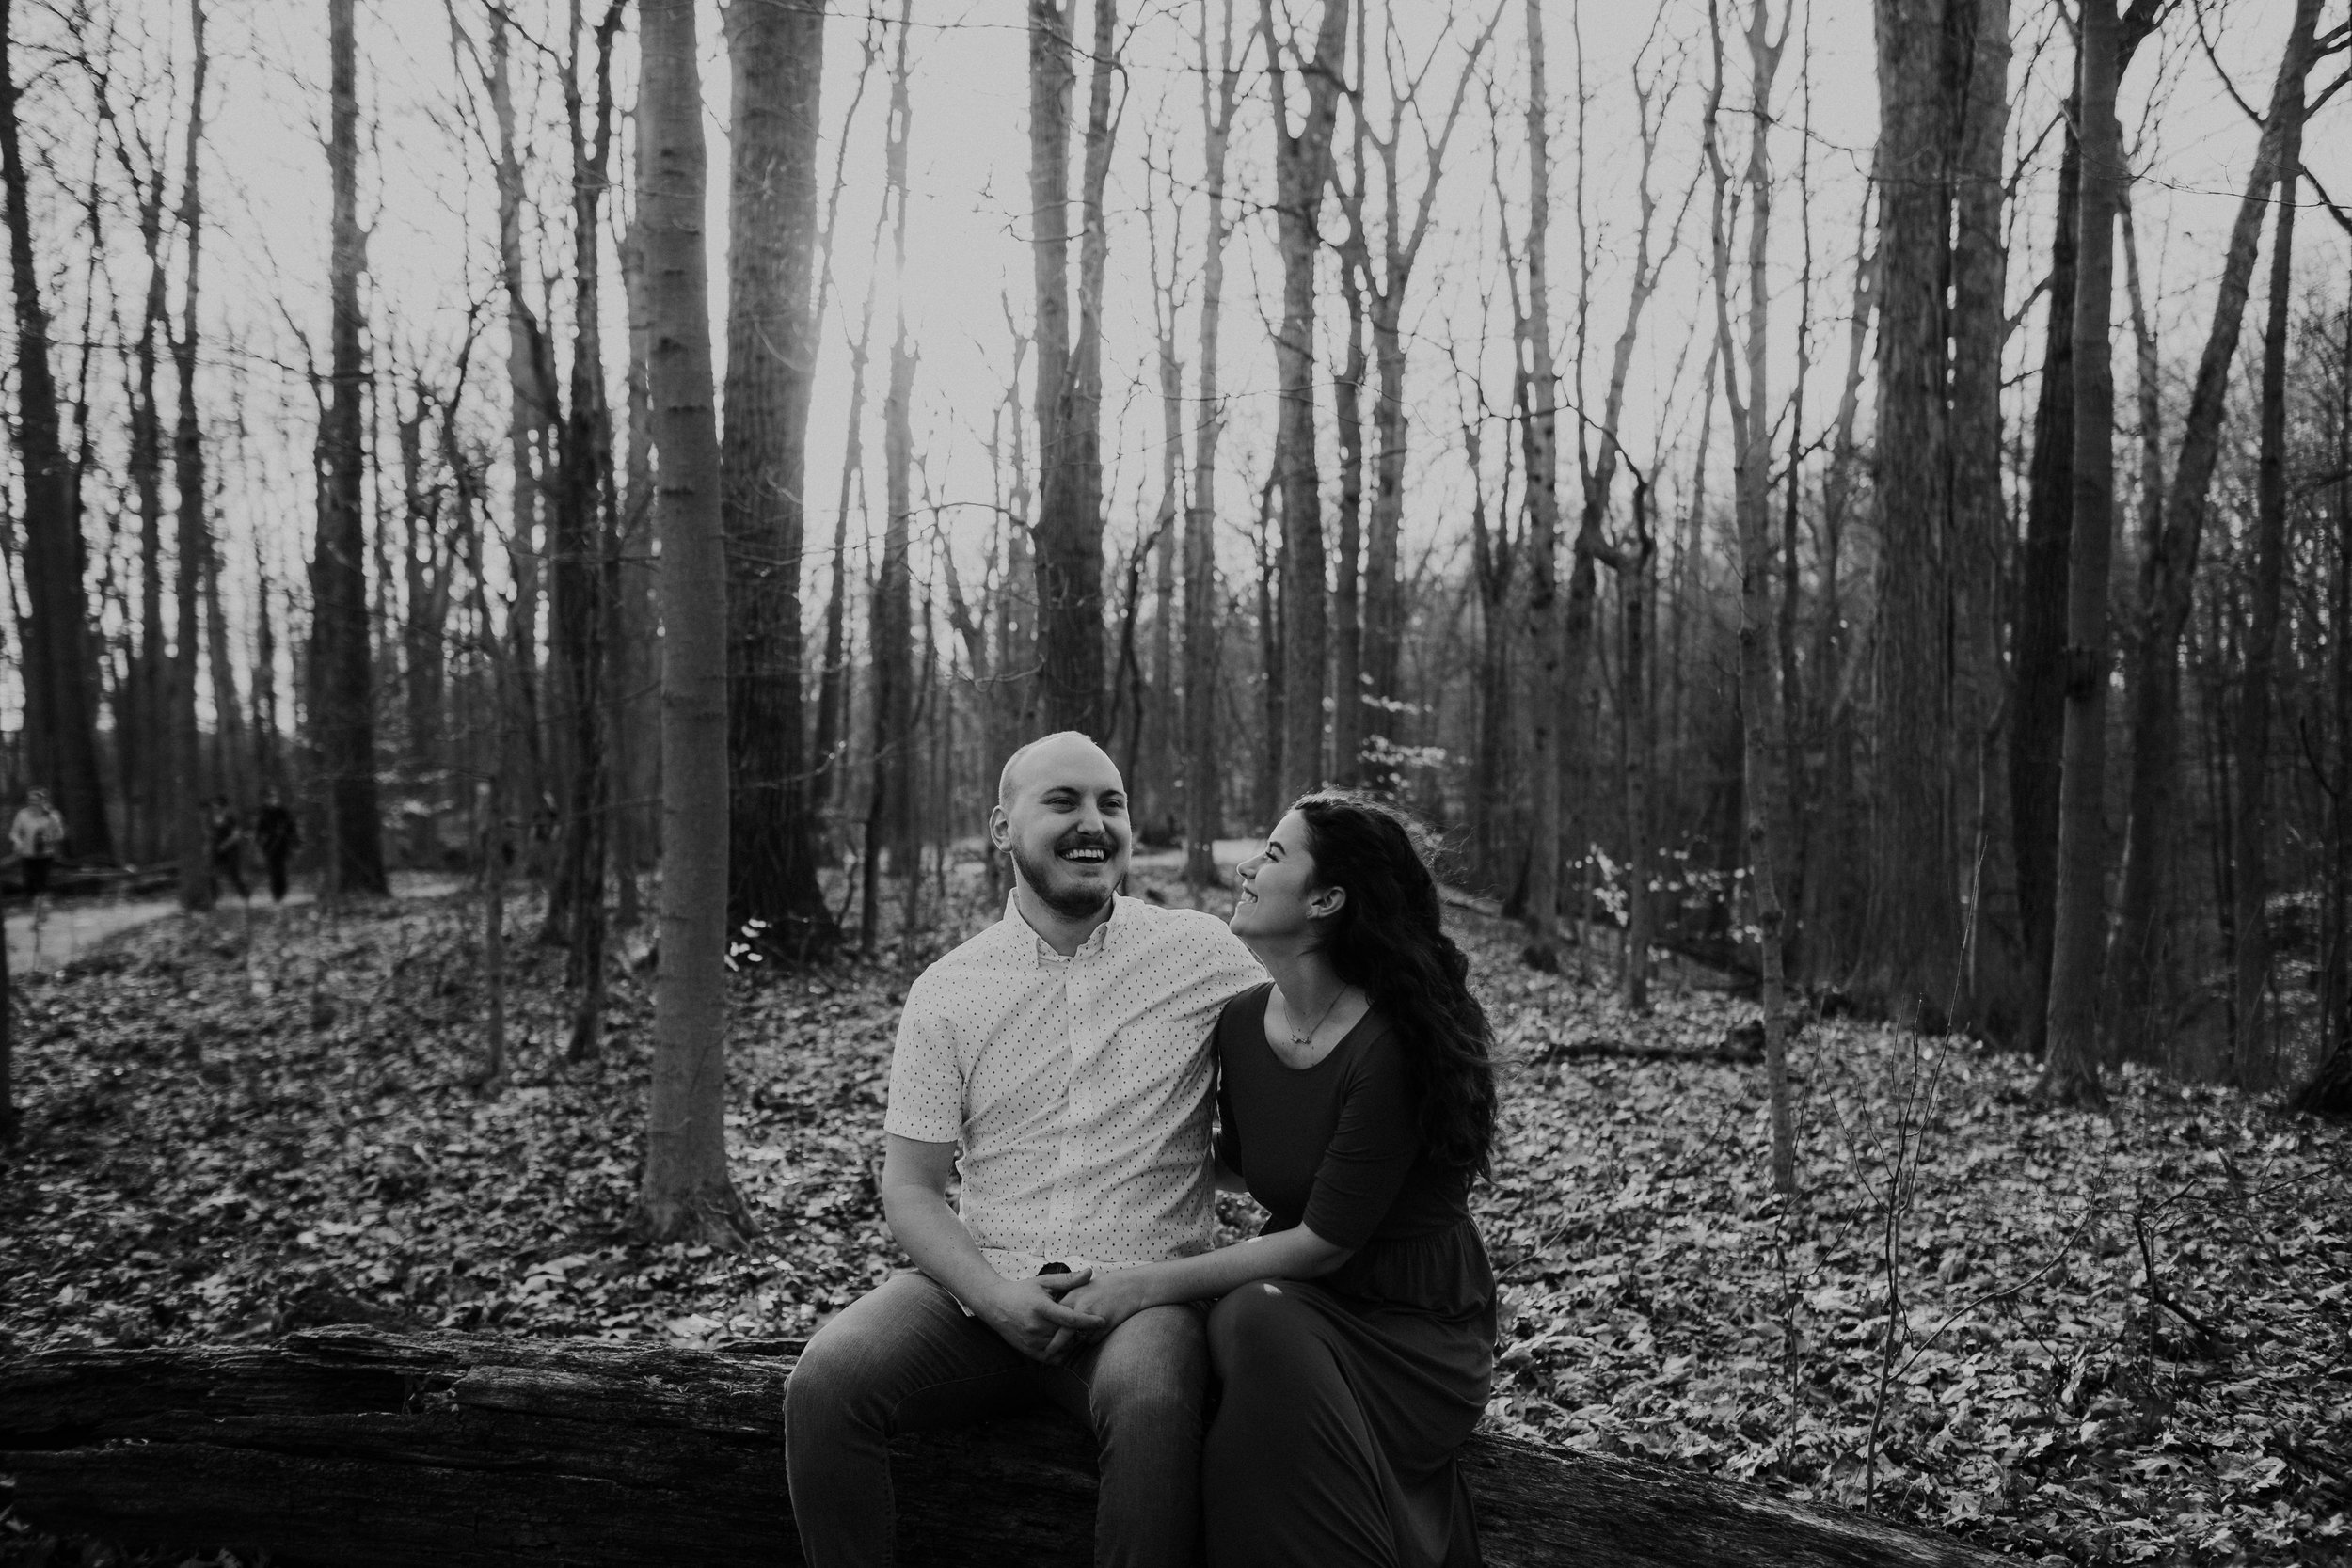 highbanks metro park columbus ohio wedding and couples session photographer19.jpg